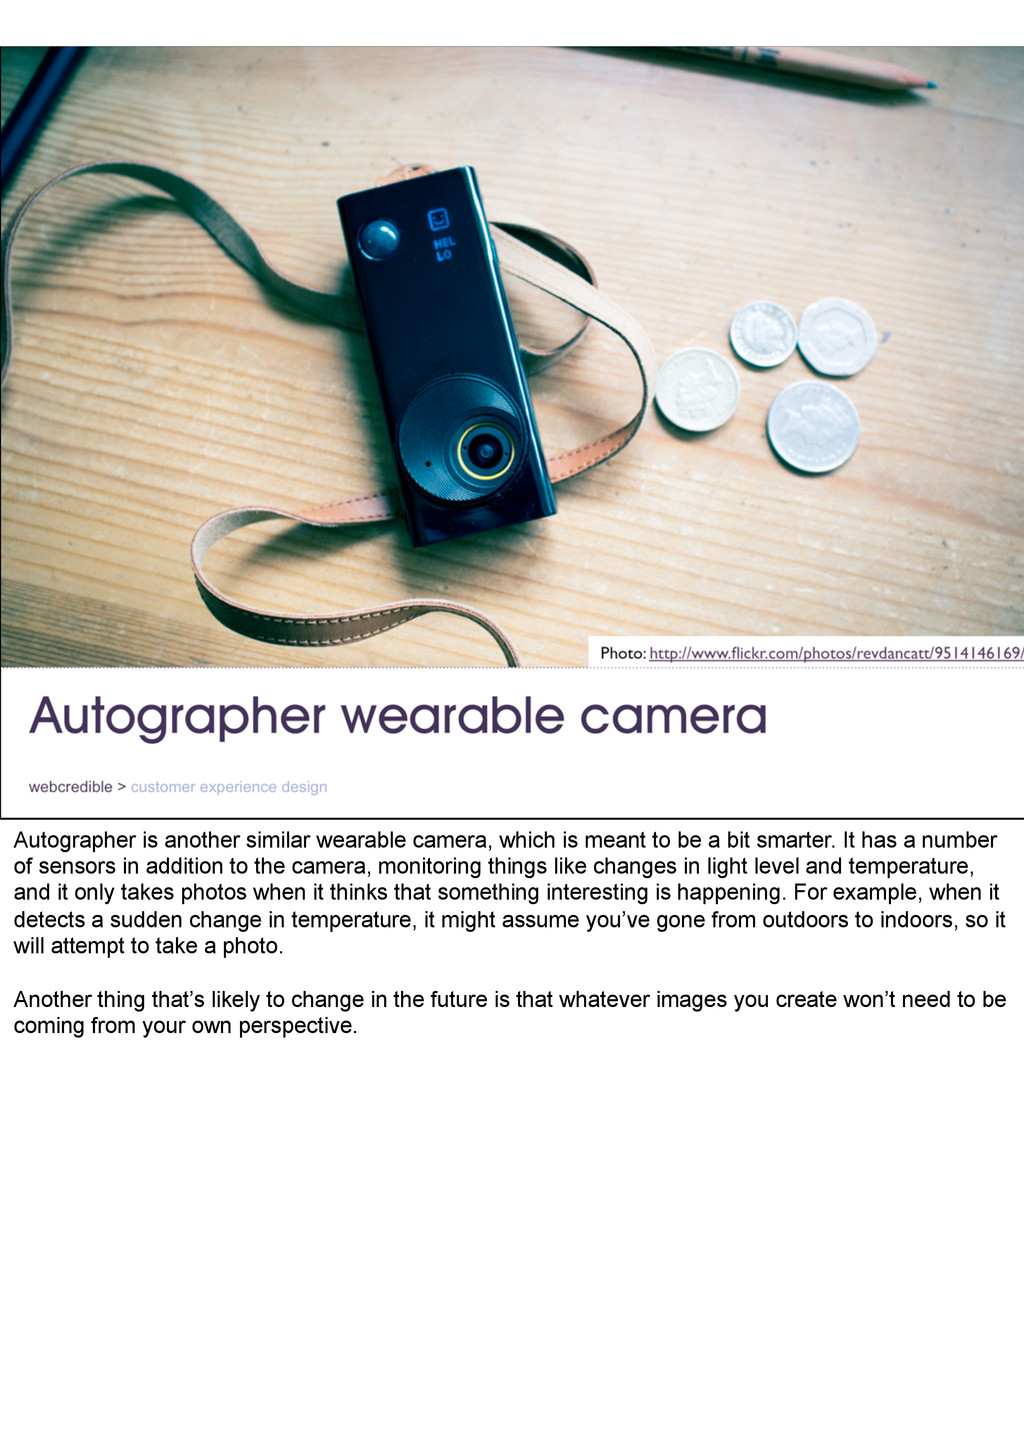 Autographer is another similar wearable camera,...